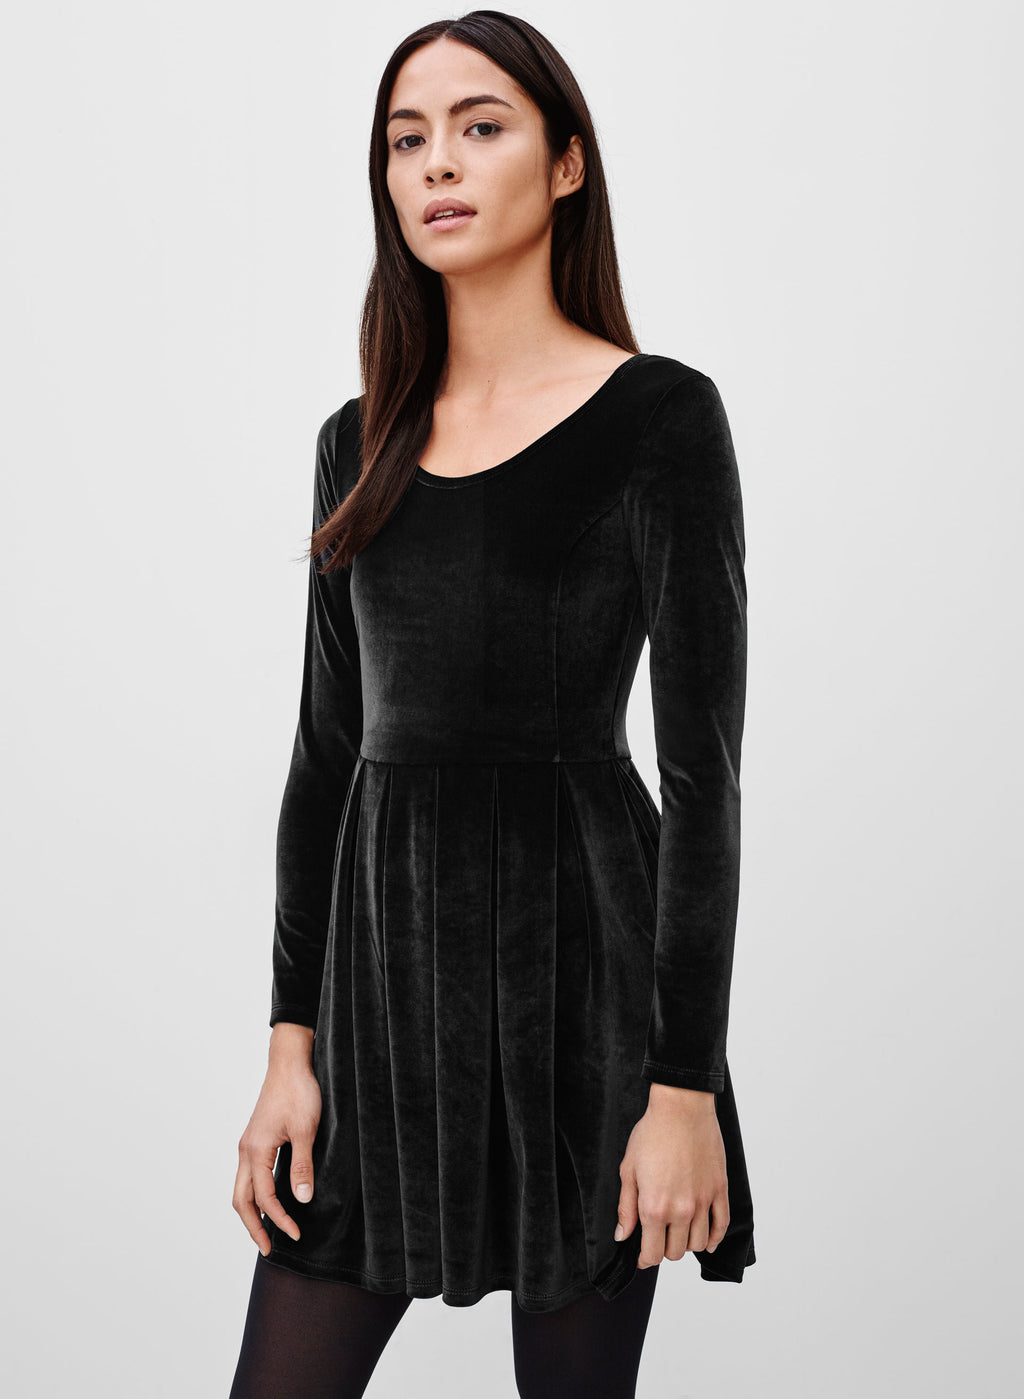 Talula Lambeth Black Long Sleeve Velour Dress Size S